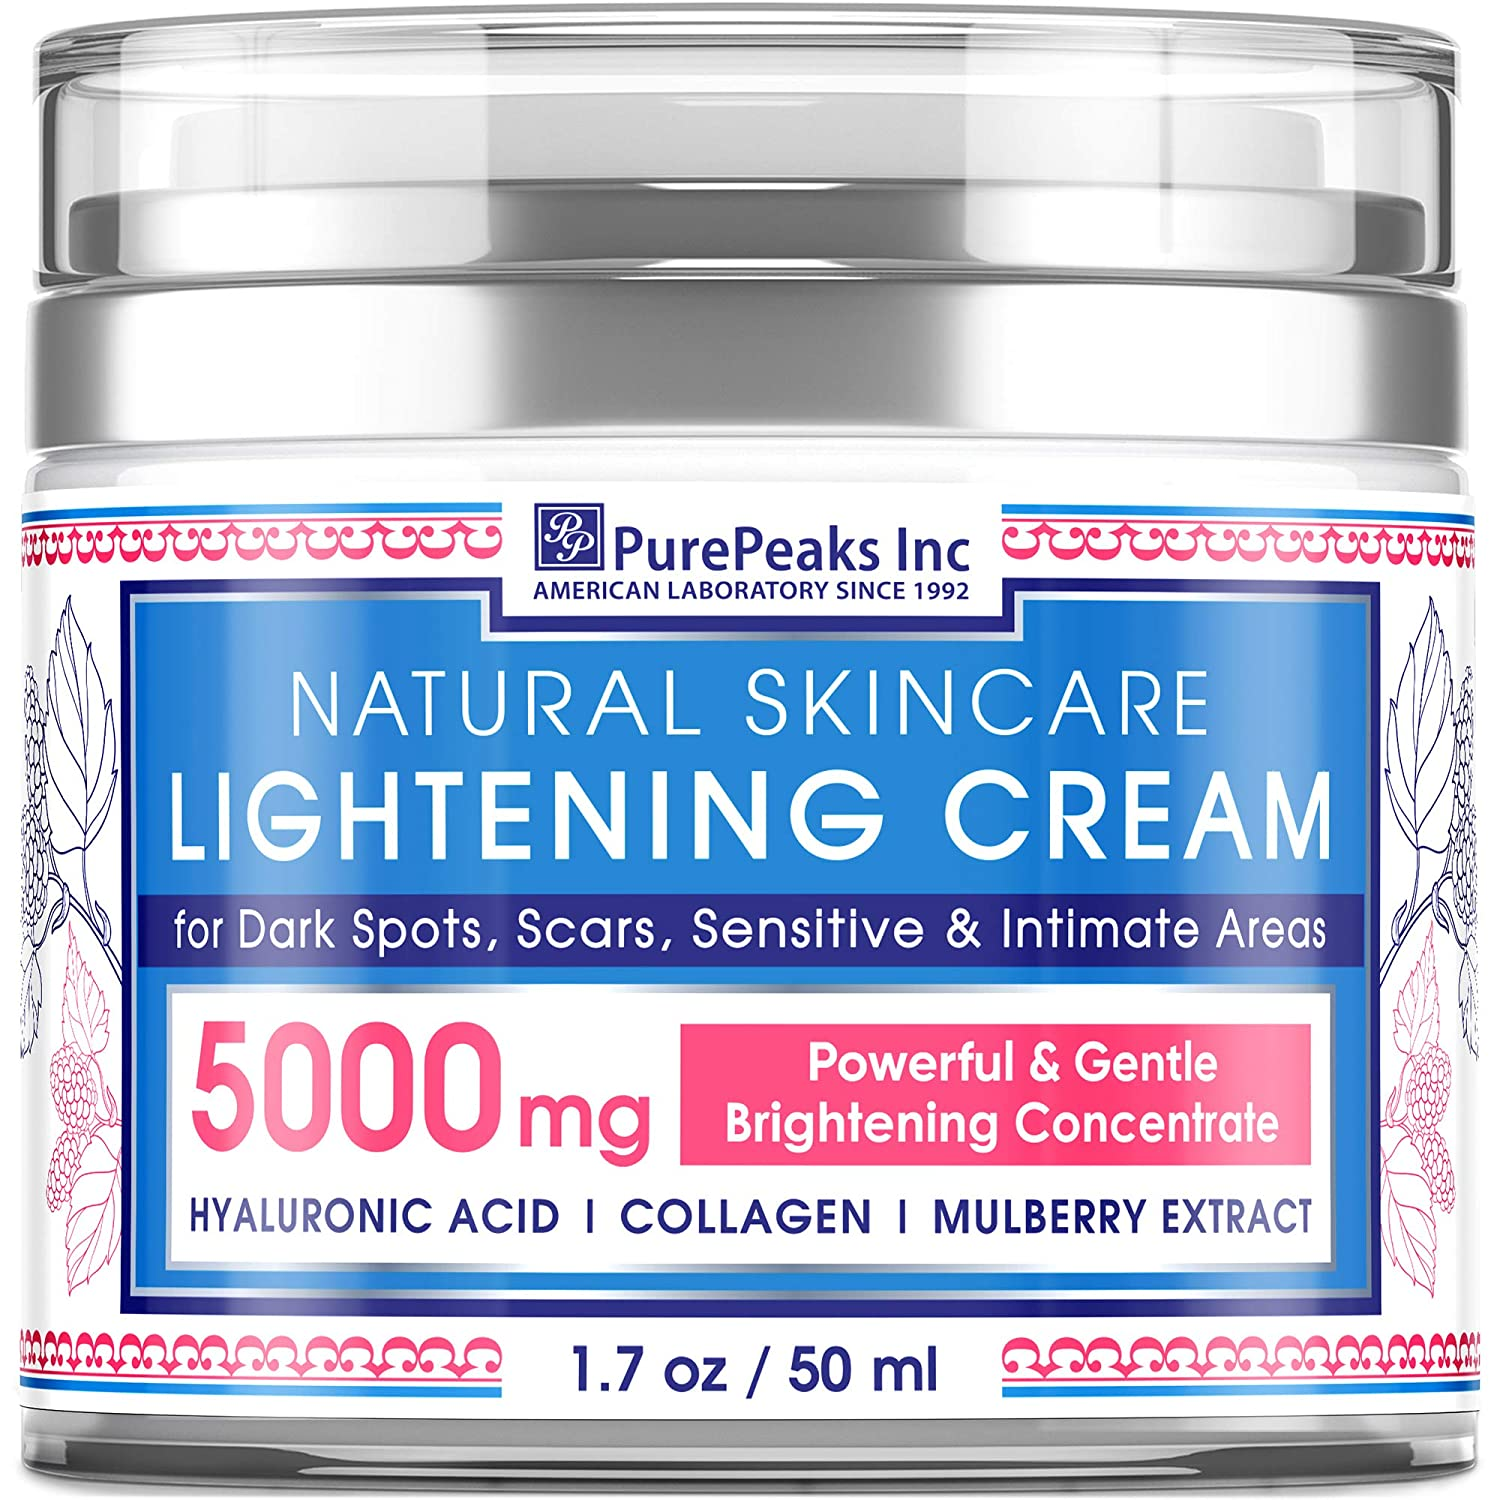 Cream for Face, S?nsitive and Intimate Ar??s - Natural Skinc?re Made in USA - D?rk Sp?t Remover with Arbutin, Hyaluronic Acid and Collagen - 1.7 oz